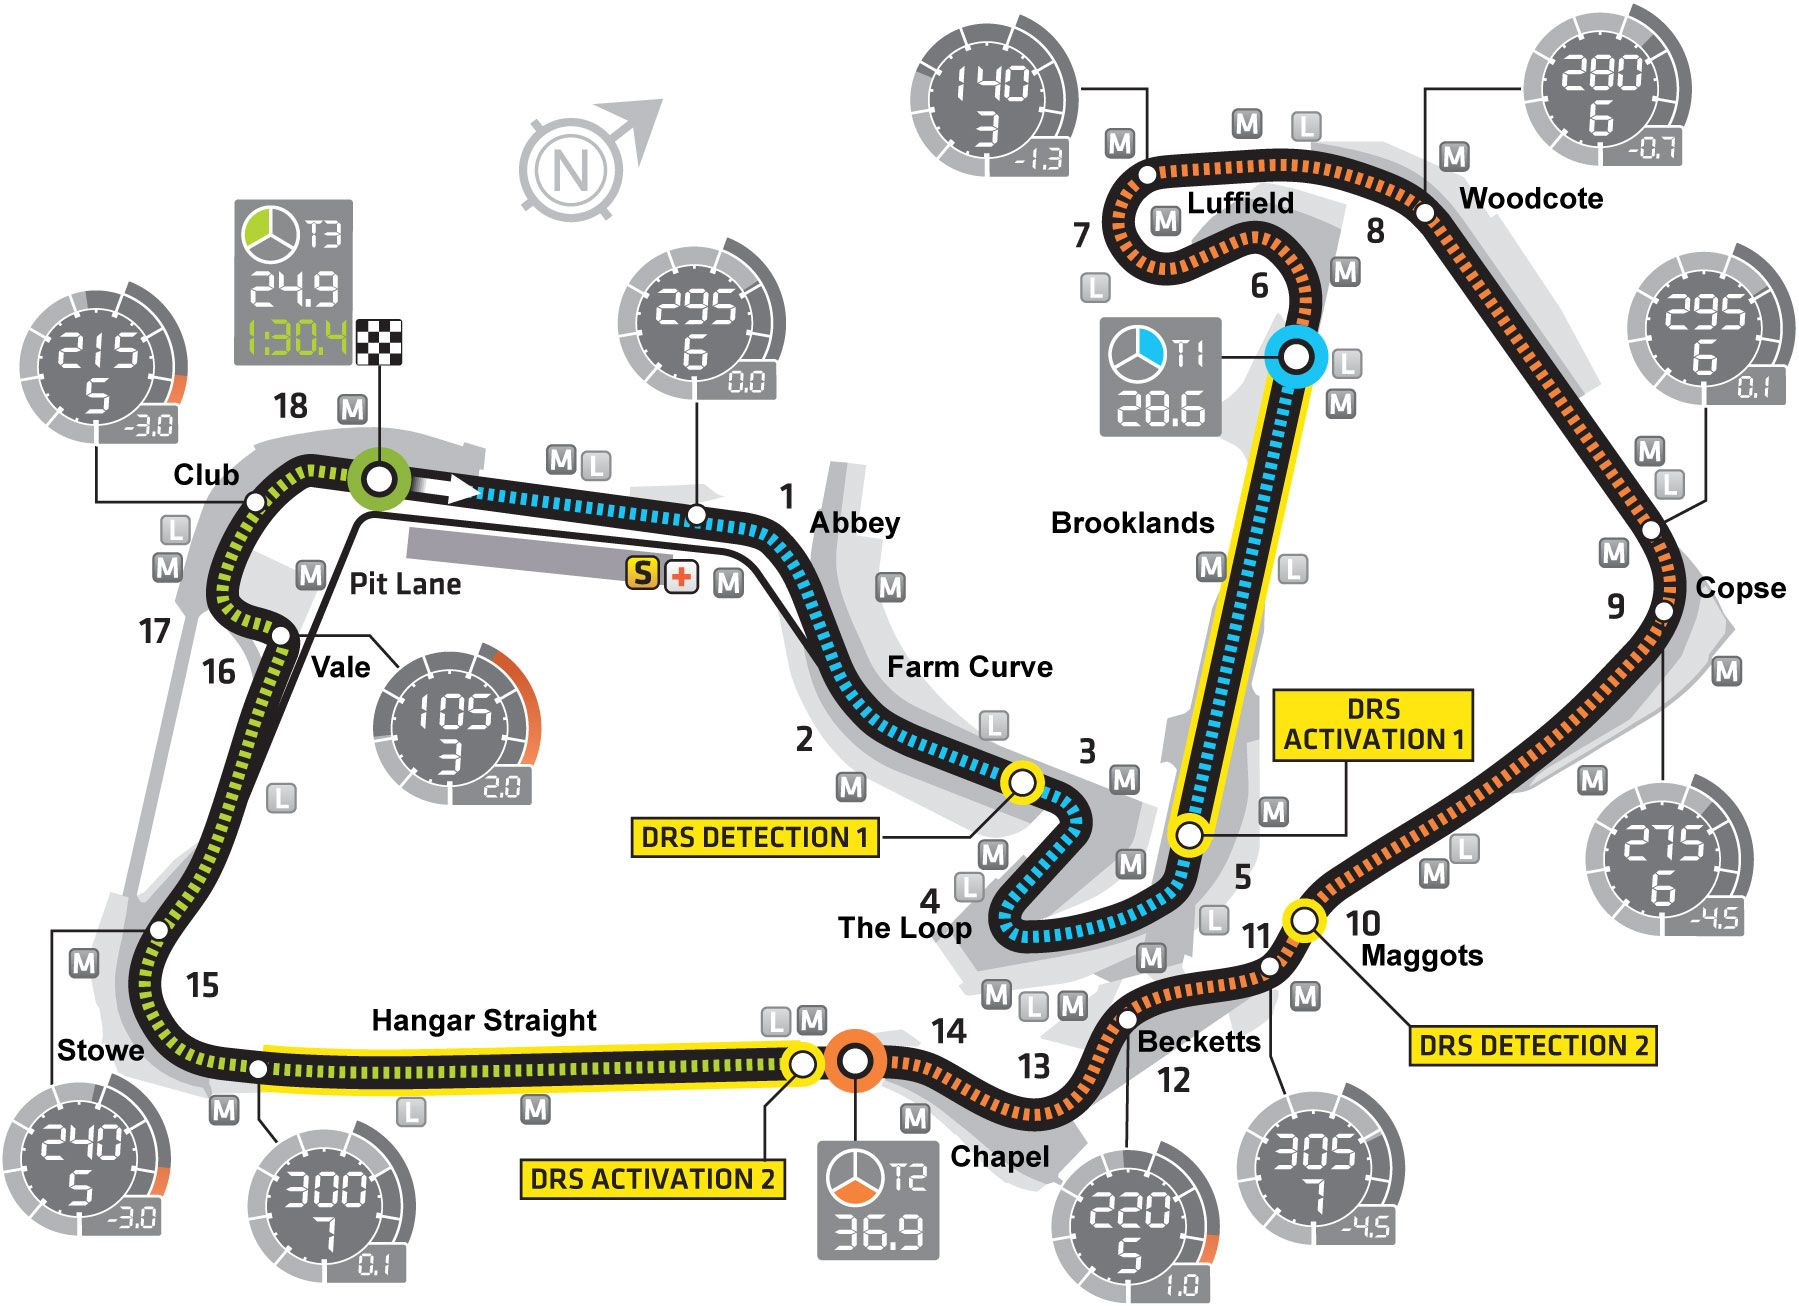 Drag Race Wiring Harness in addition Remote Control Race Track in addition Production Line Isometric Powerpoint Template moreover Funny Running Mistakes To Learn From further Viewtopic. on race track diagram